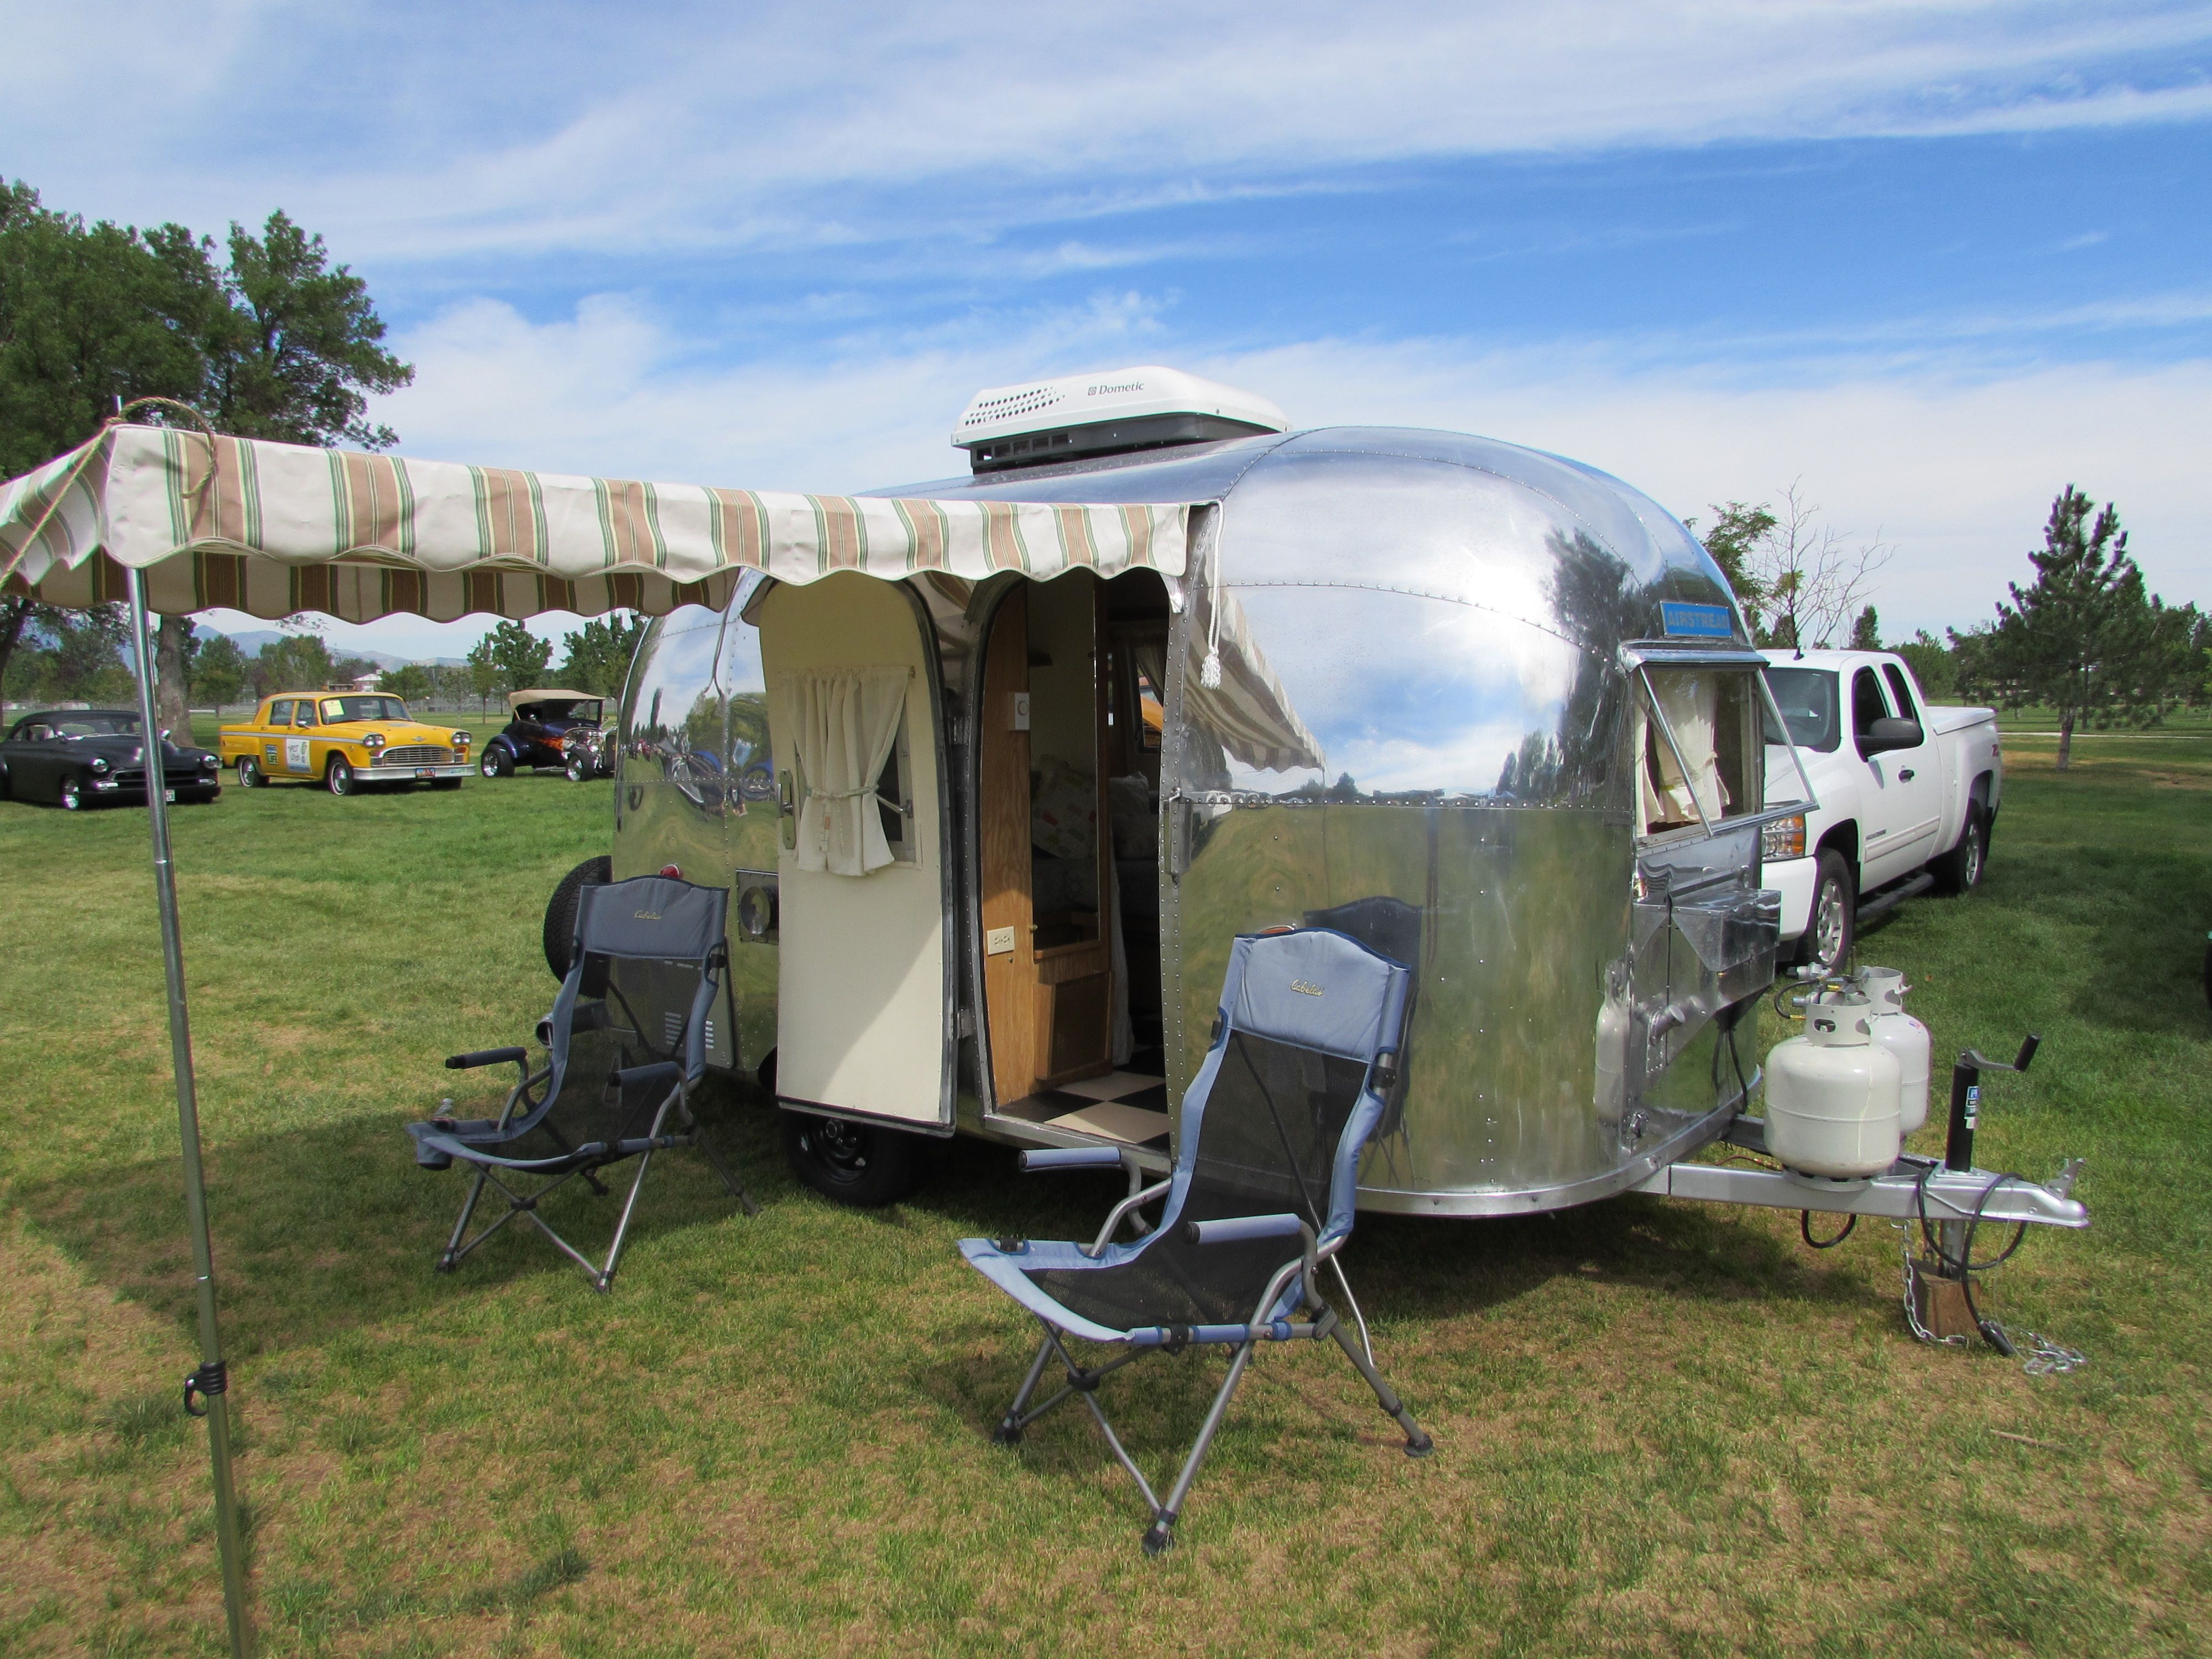 the awning provided some much needed shade glamping pinterest airstream bambi and airstream. Black Bedroom Furniture Sets. Home Design Ideas